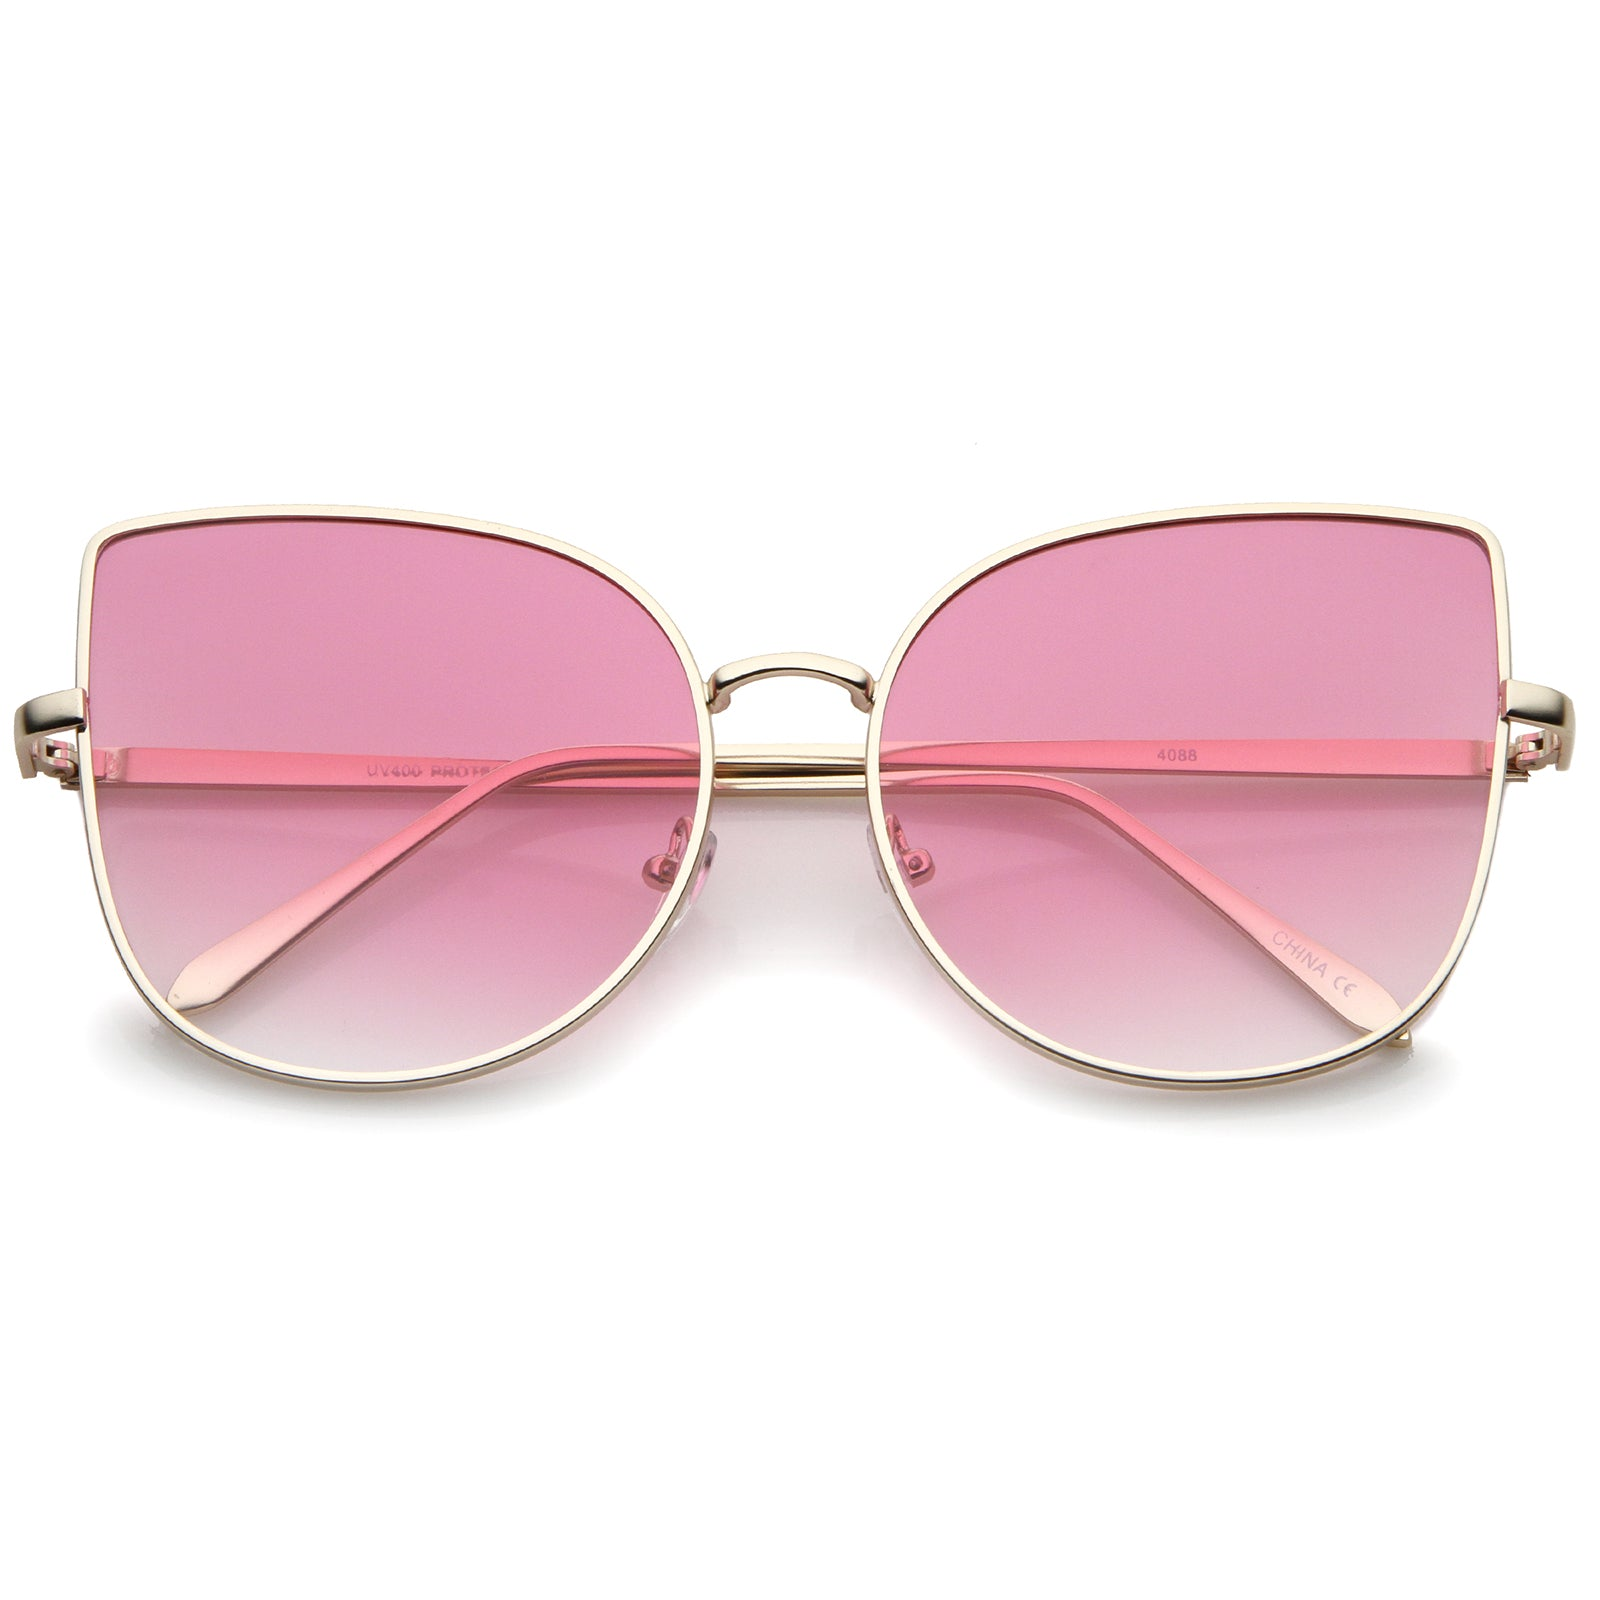 Women's Oversize Slim Metal Frame Gradient Flat Lens Cat Eye Sunglasses 58mm - sunglass.la - 8